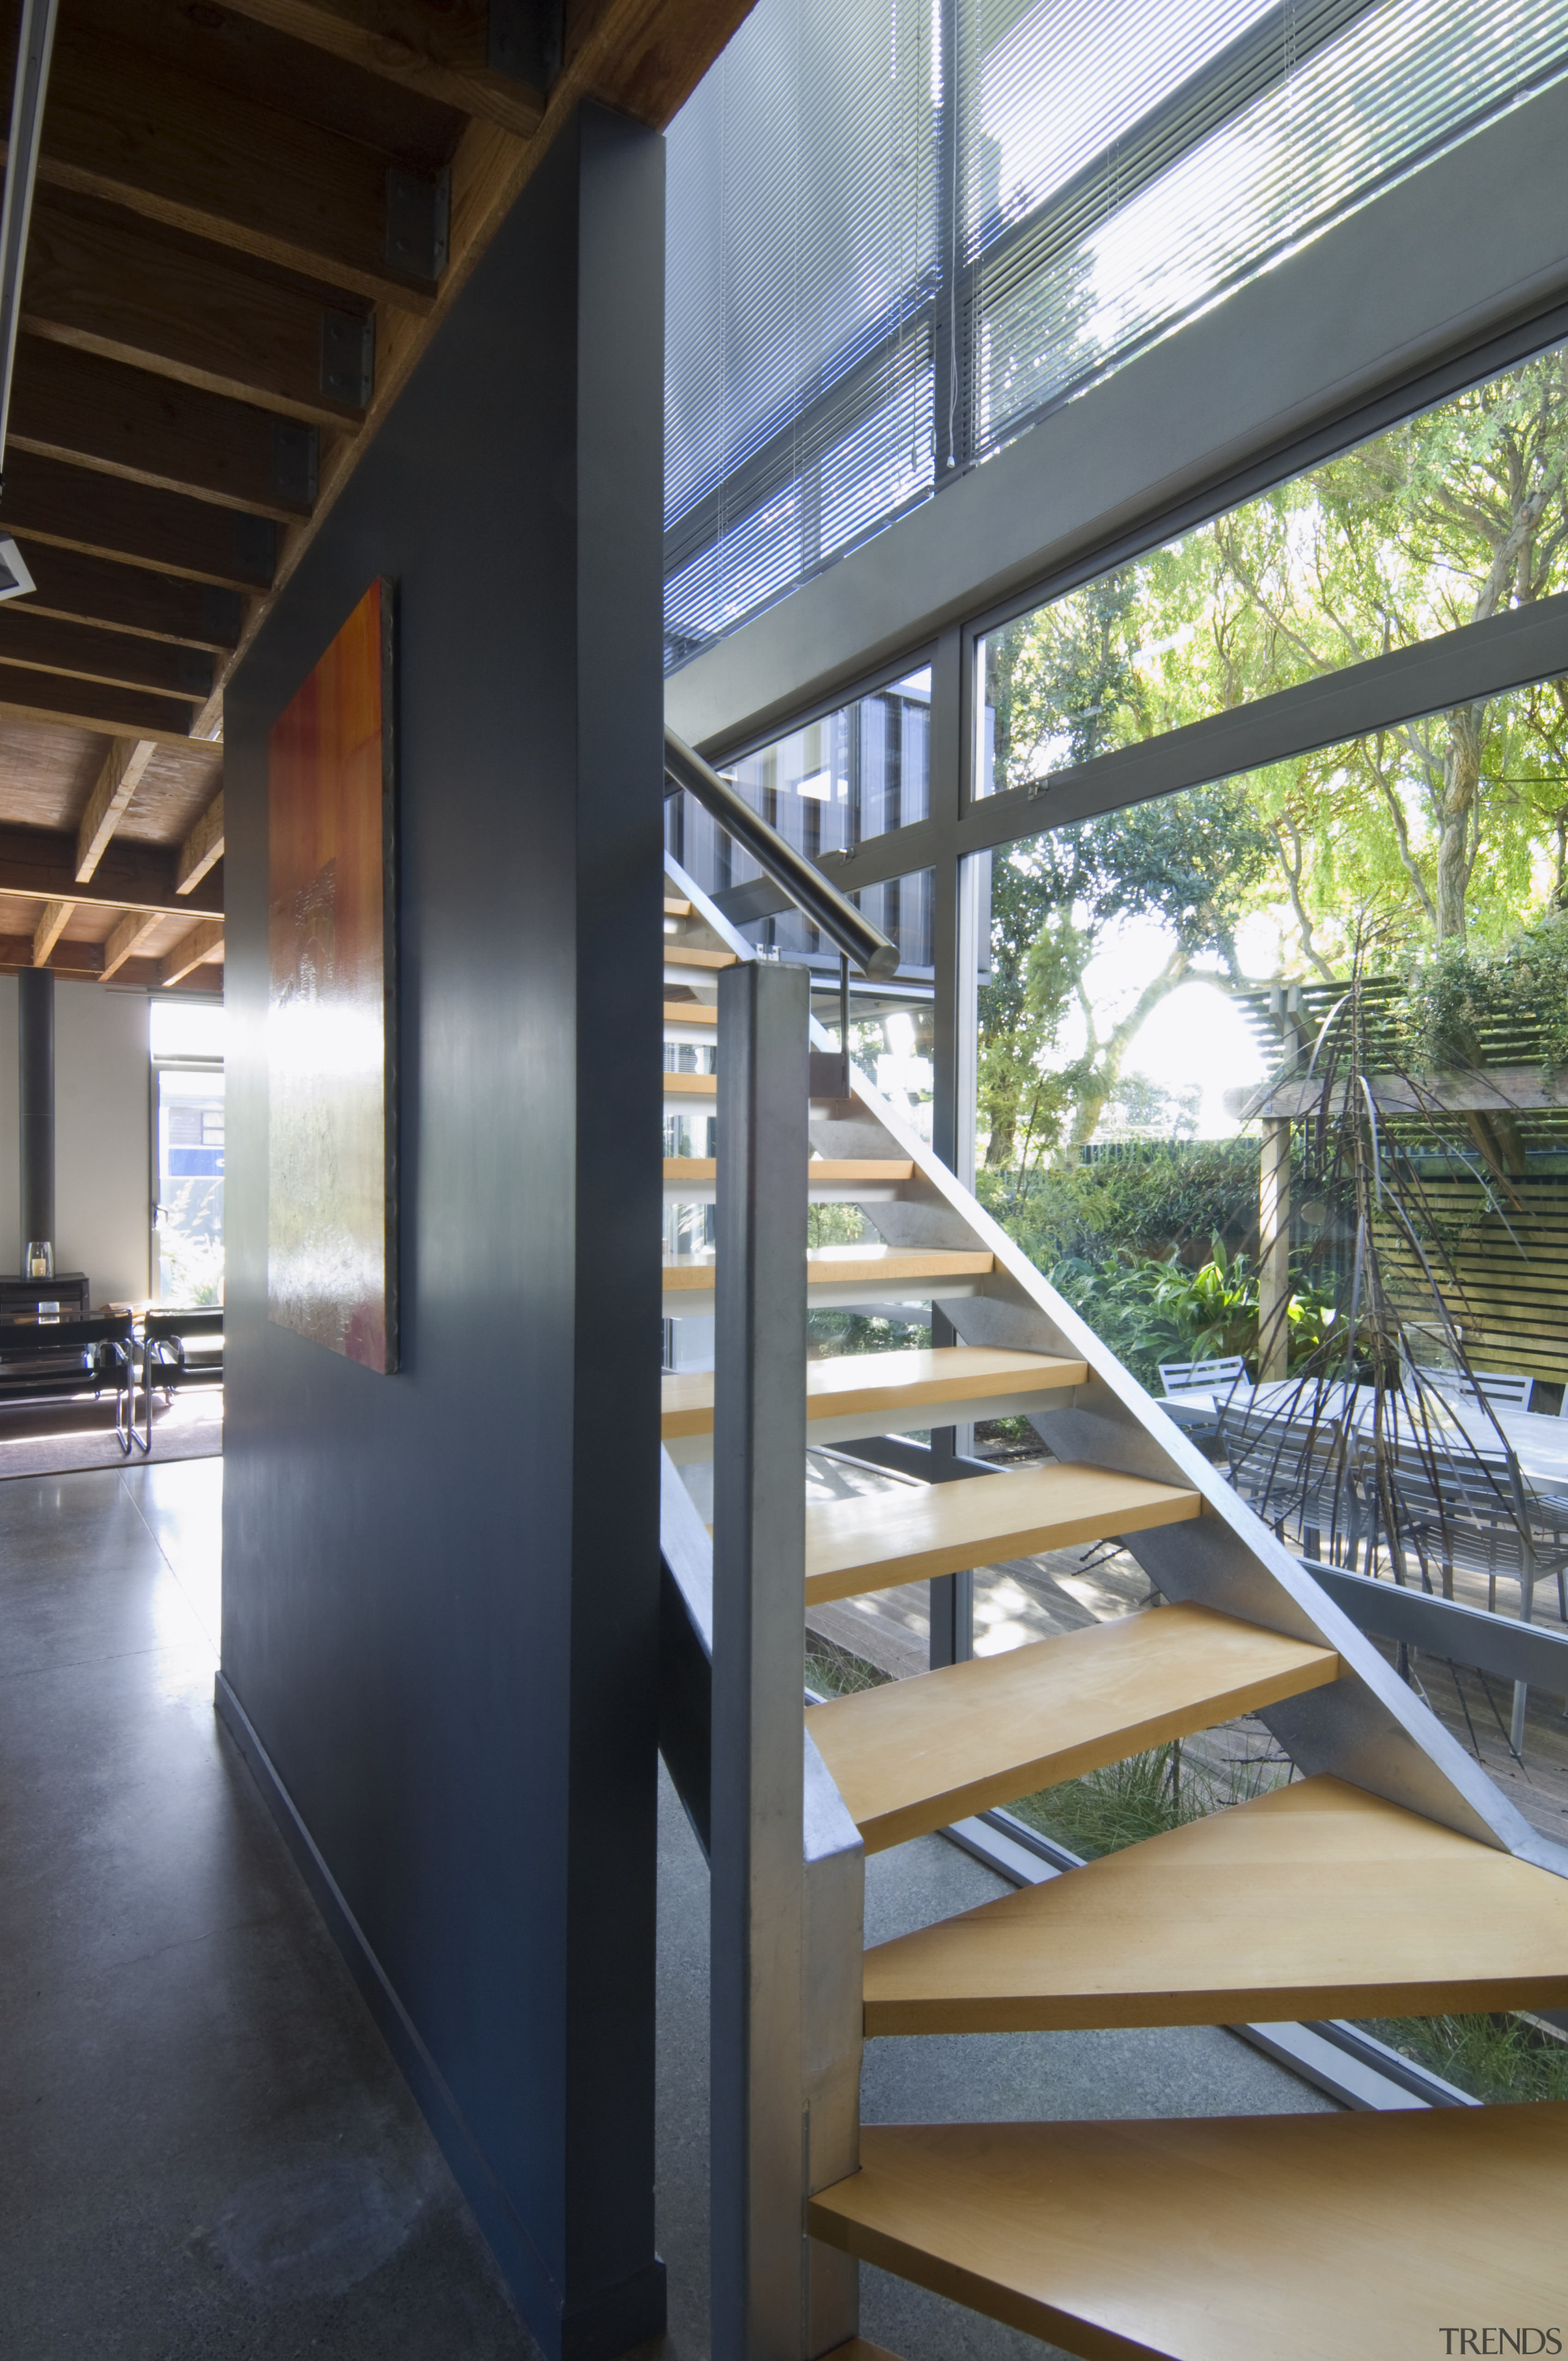 View of stairway with steel railing and timber architecture, daylighting, glass, handrail, stairs, structure, black, gray